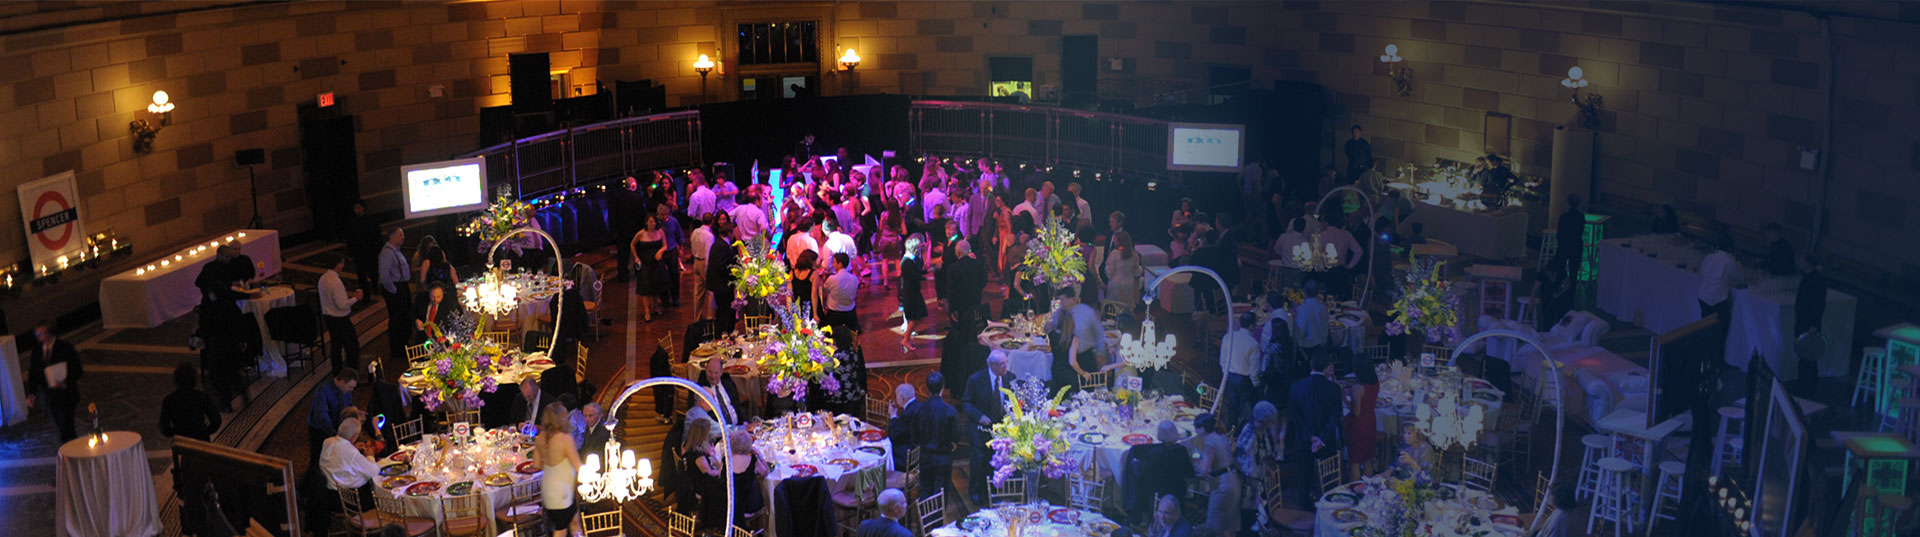 Custom event design and atmospheric environment design for private events in New York City